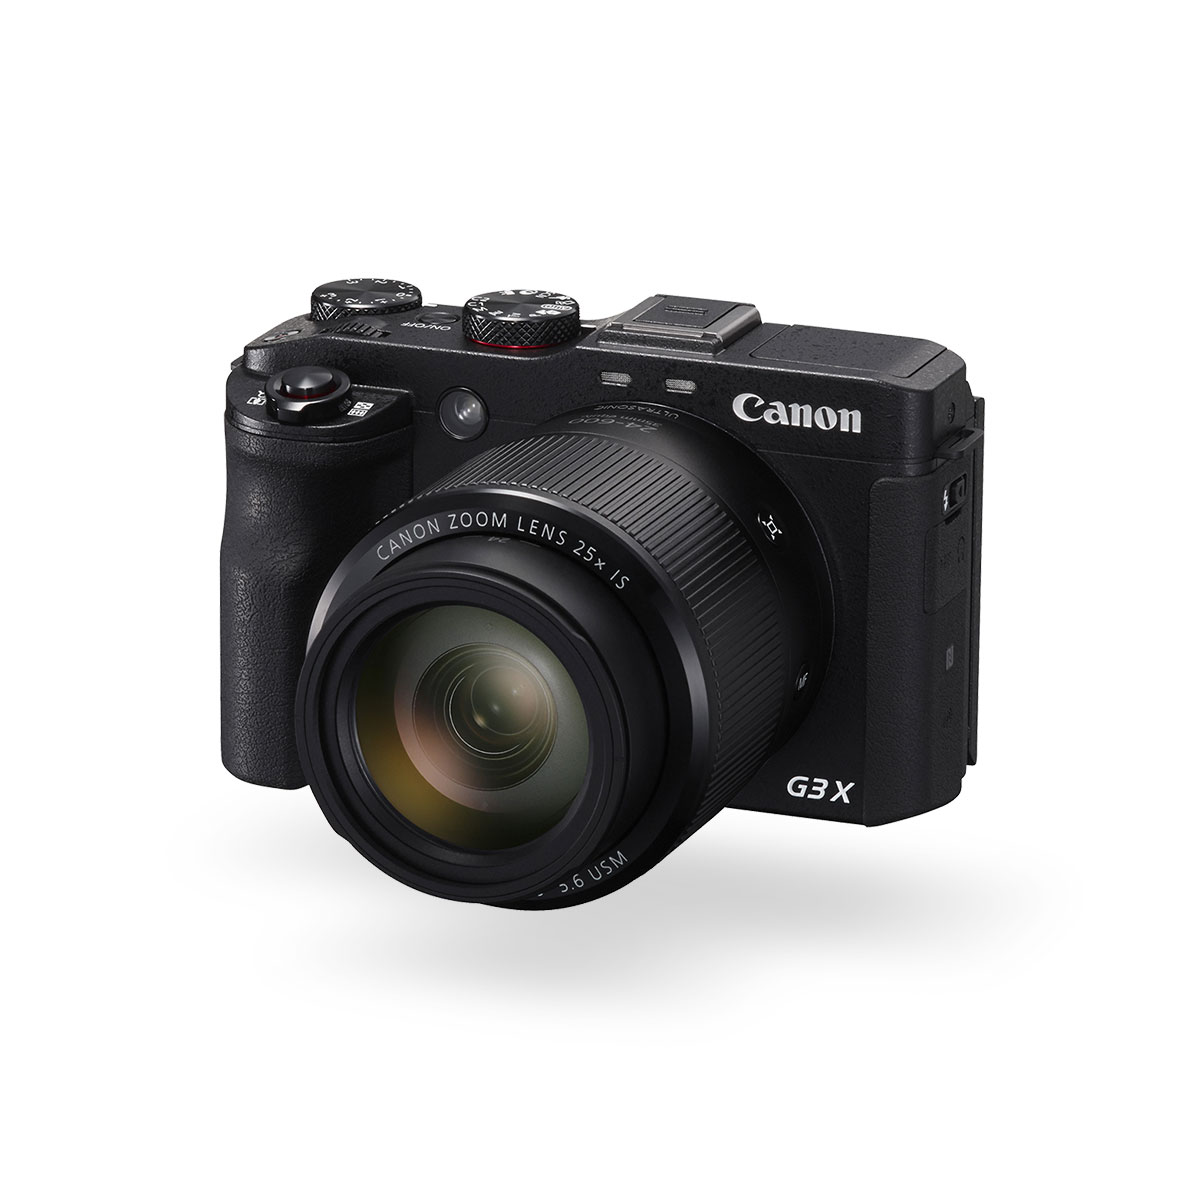 Canon PowerShot G3 X black front angled